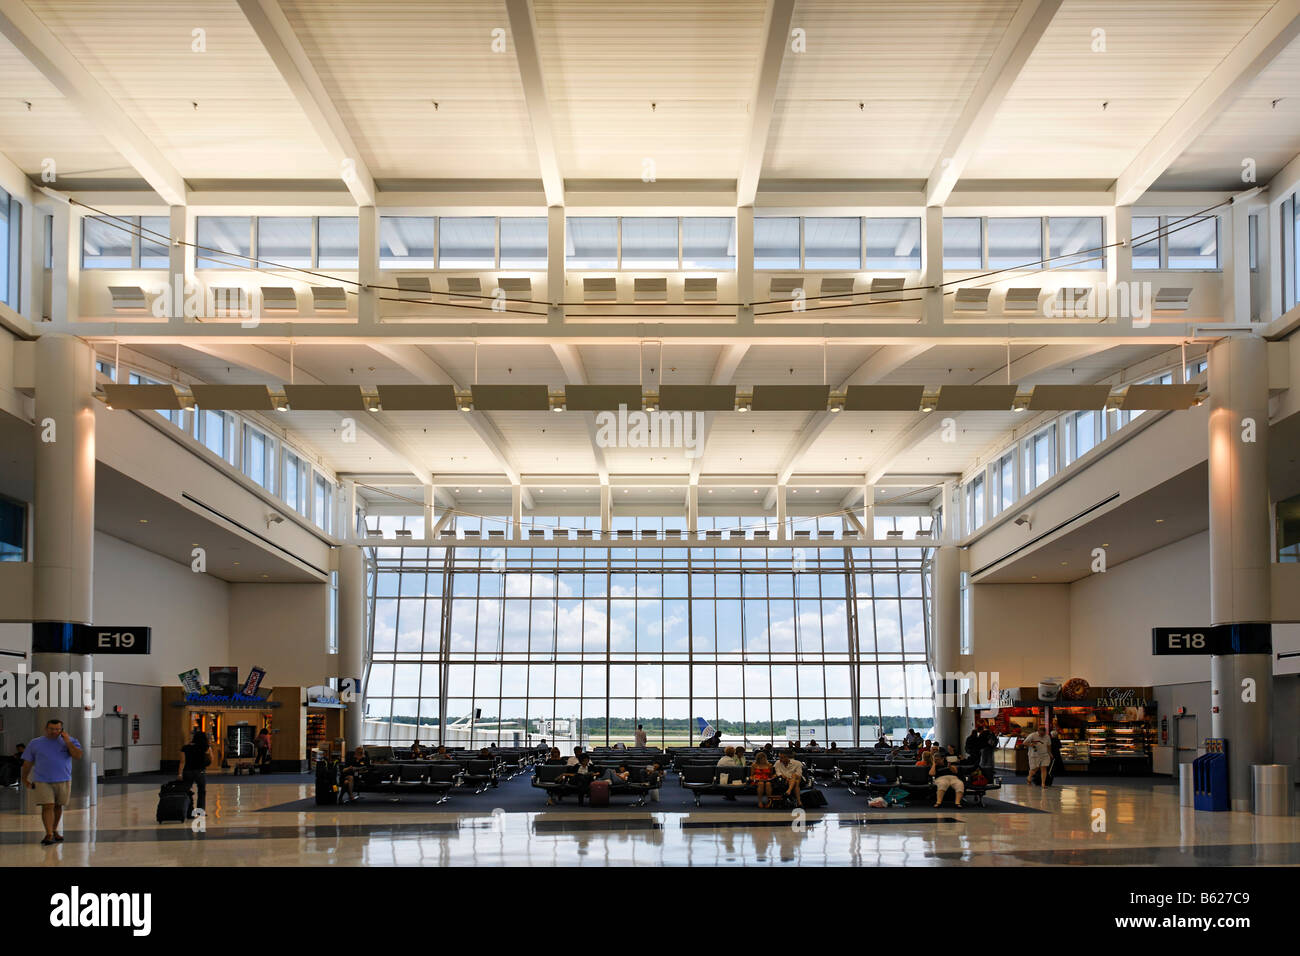 Waiting hall Gate E19, George W. Bush International Airport, Houston, Texas, USA - Stock Image